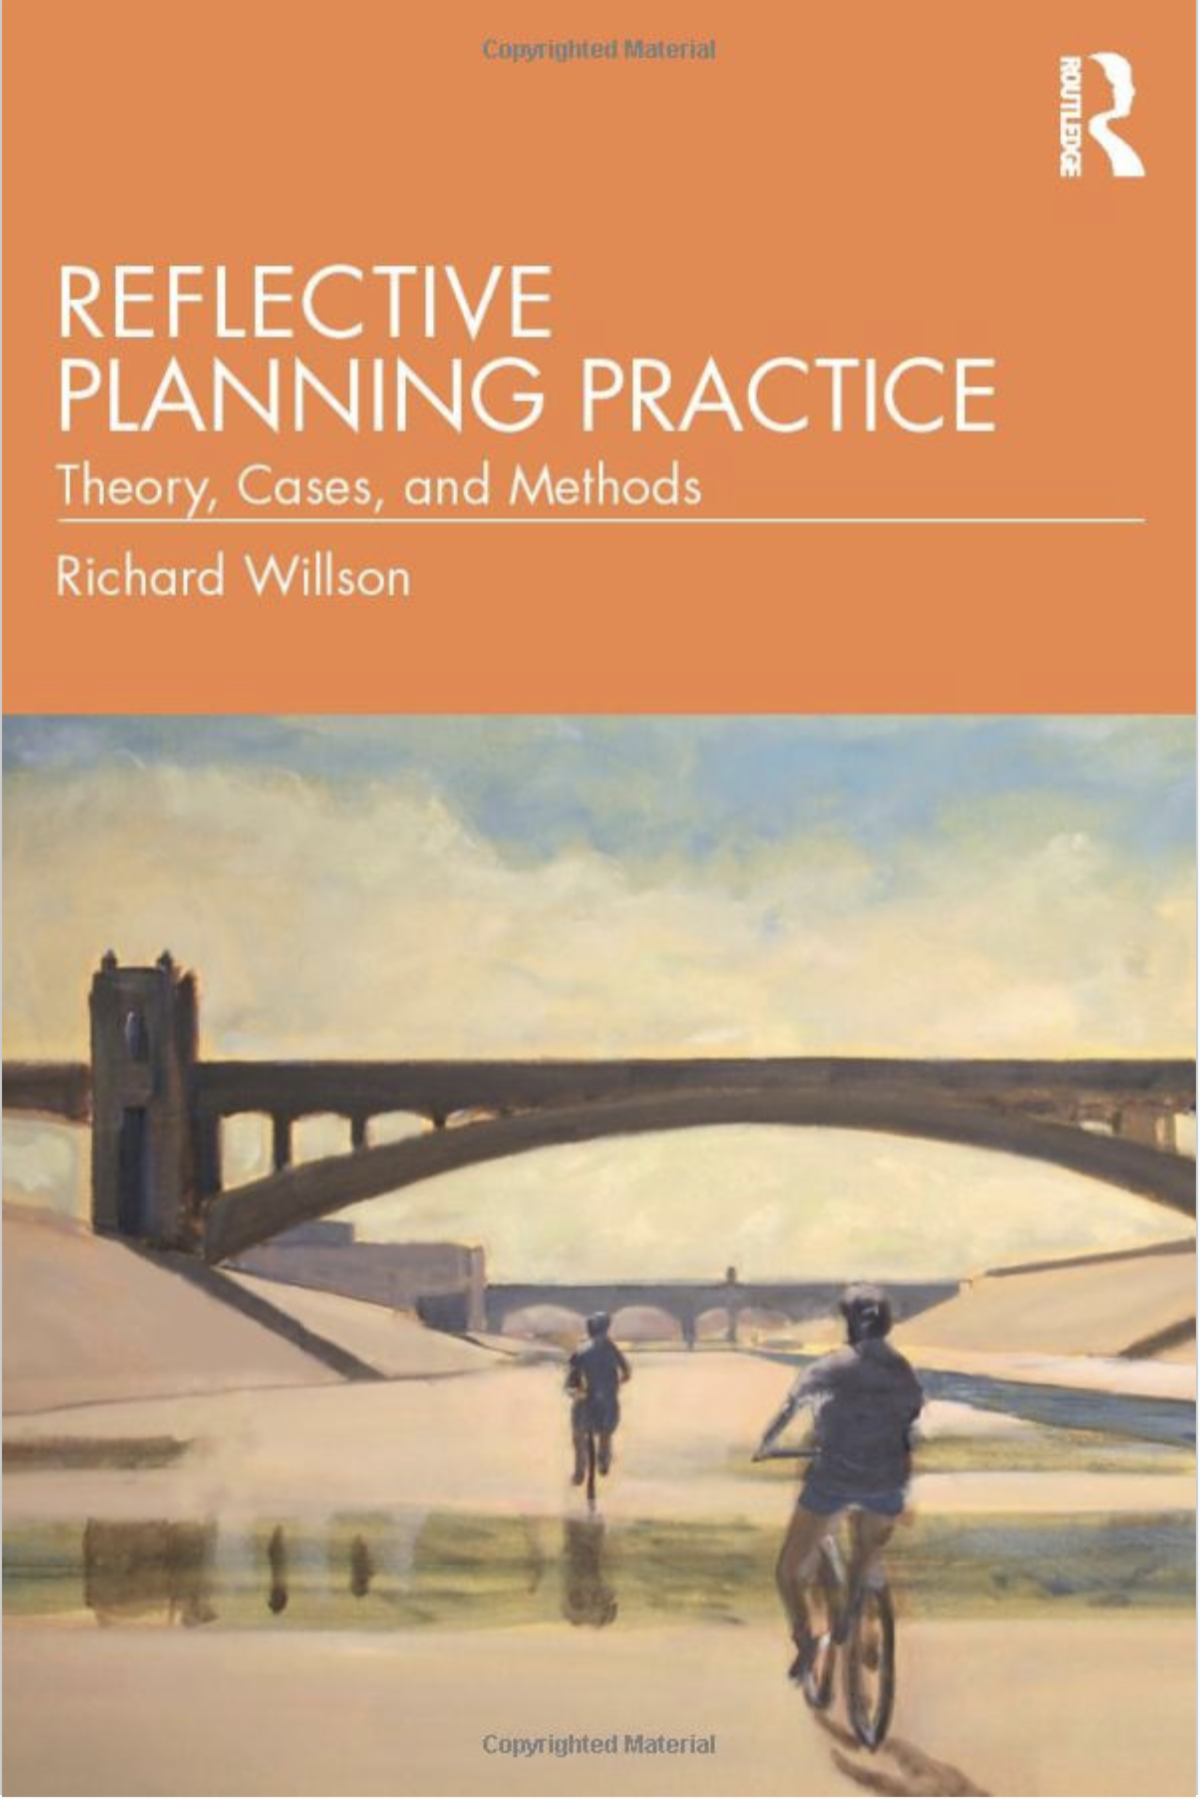 Reflective Planning Practice by Richard Willson